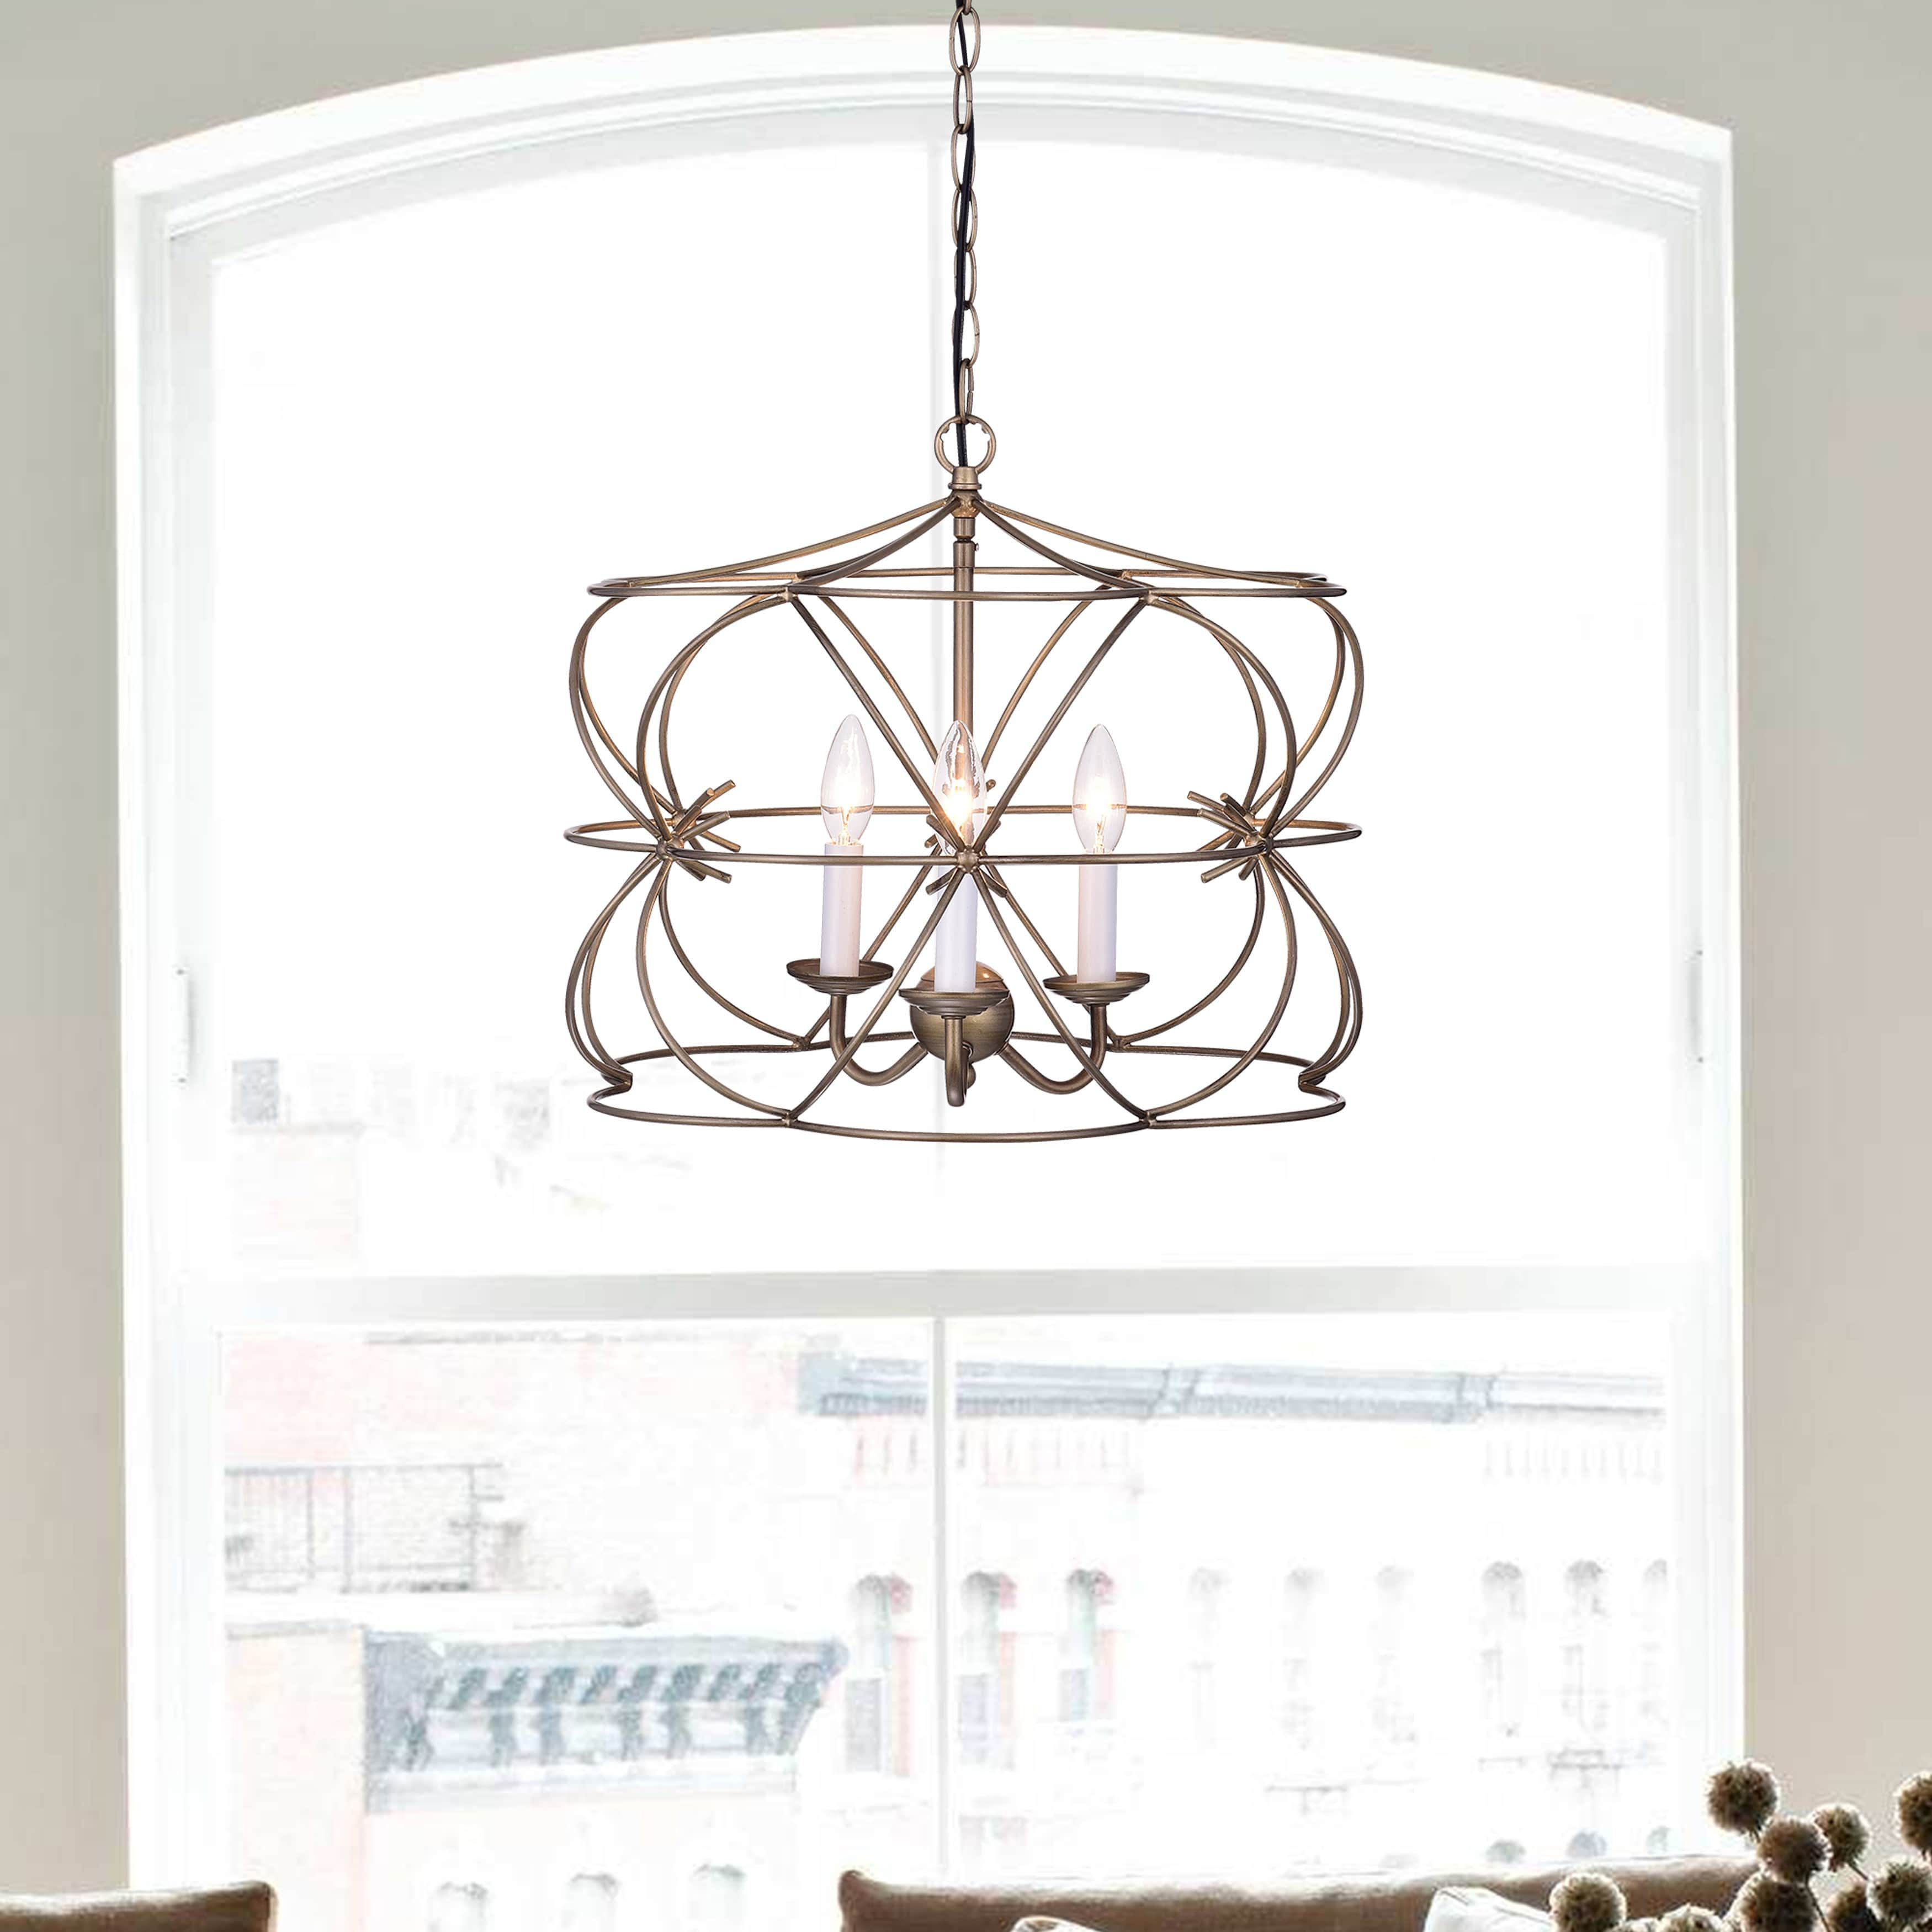 Joshua Antique Copper 3-Light Iron Stem Cage Chandelier In throughout Waldron 5-Light Globe Chandeliers (Image 18 of 30)